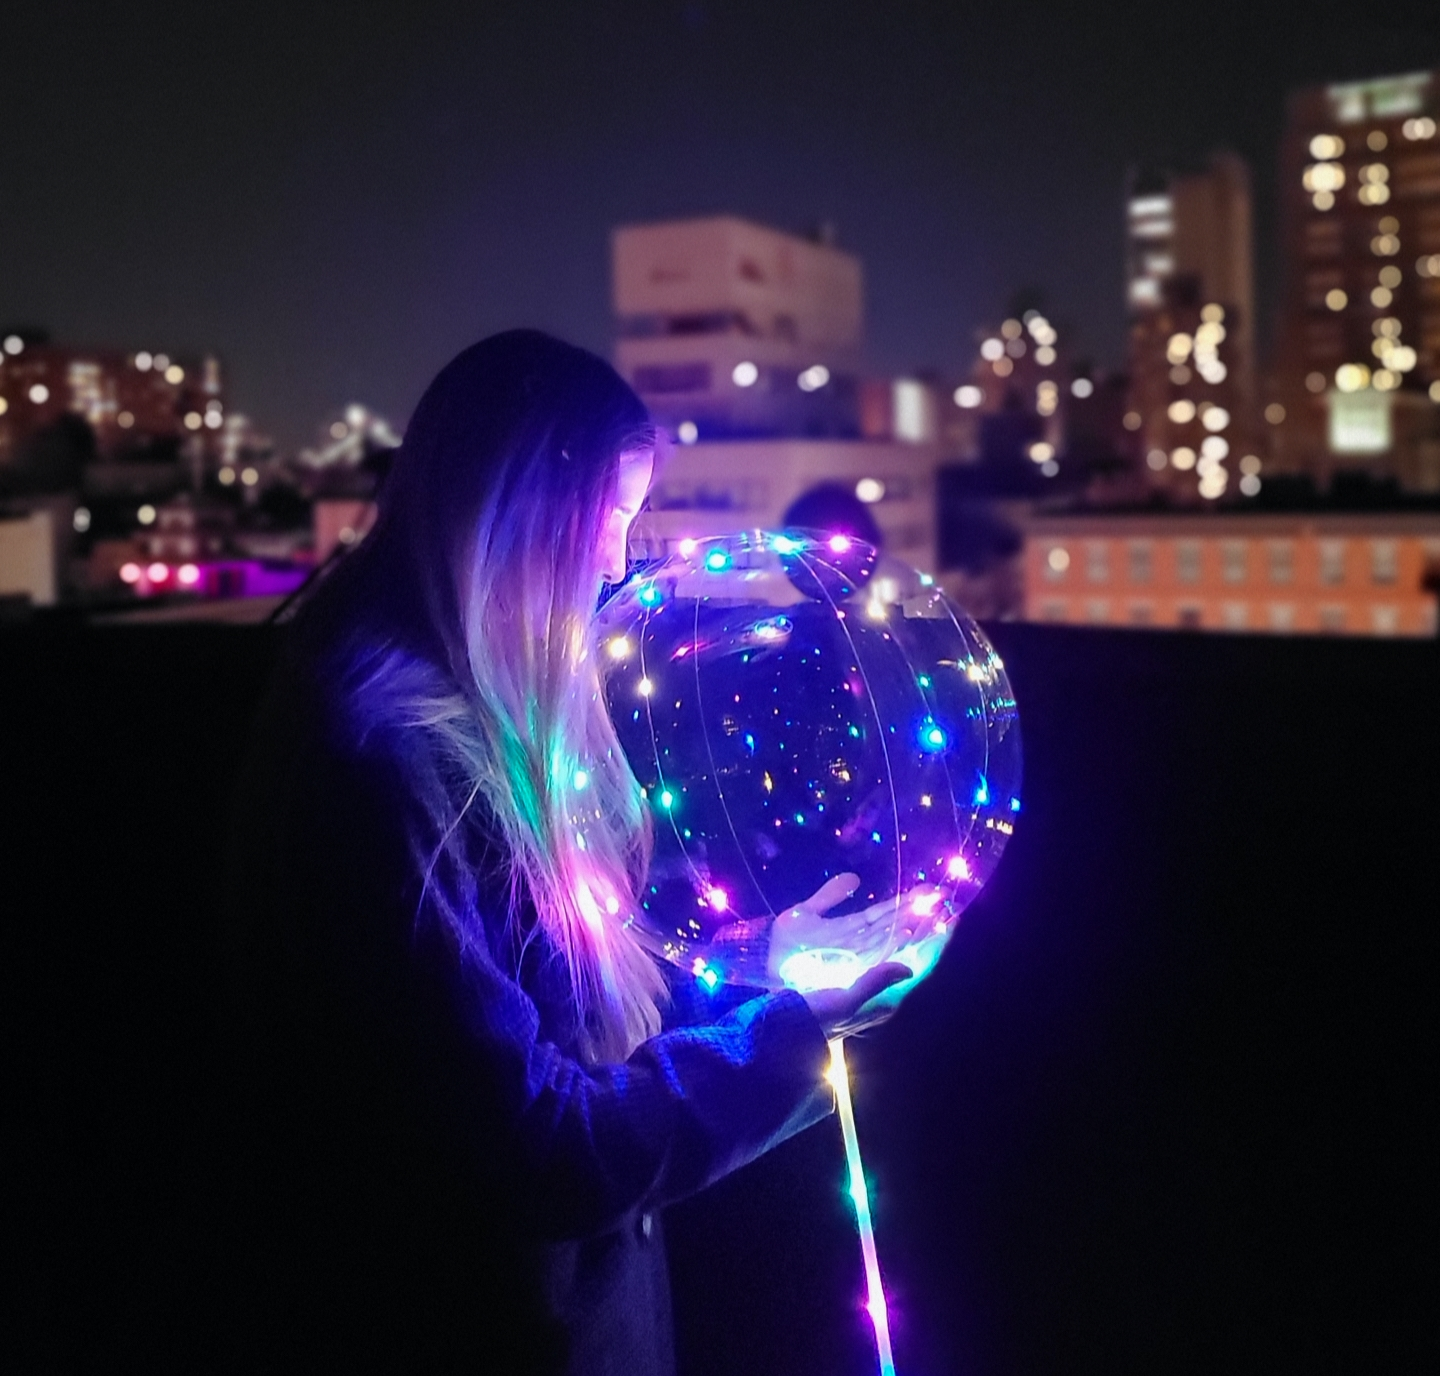 Summer night photography of a woman holding a glowing LED balloon while bokeh lights glow in the background